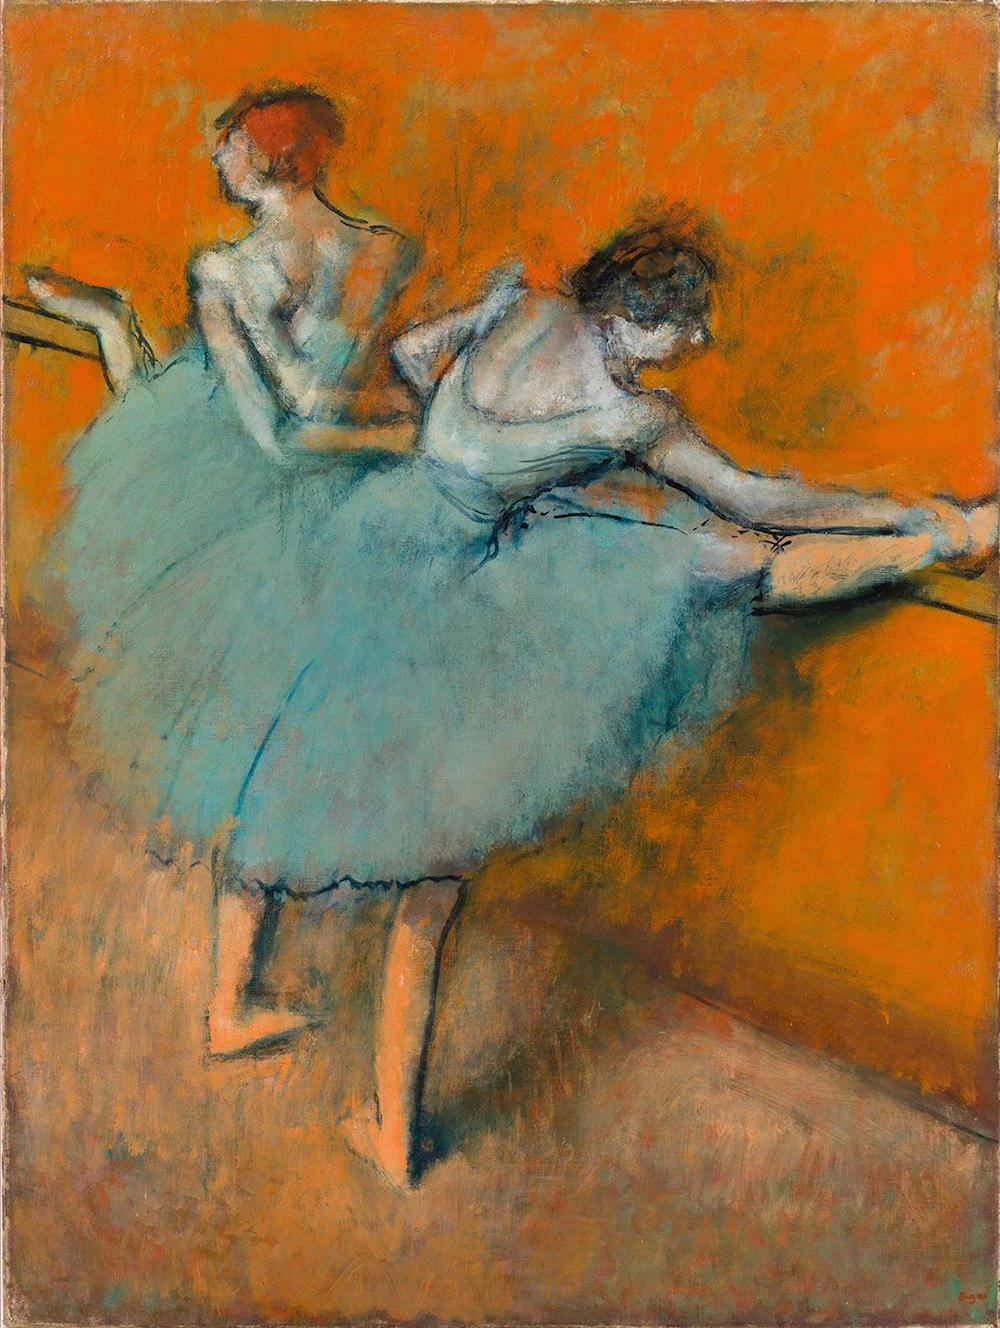 Hilaire-Germain-Edgar Degas, Bailarinas en la barra, ca. 1900. CaixaForum Madrid, 2016.